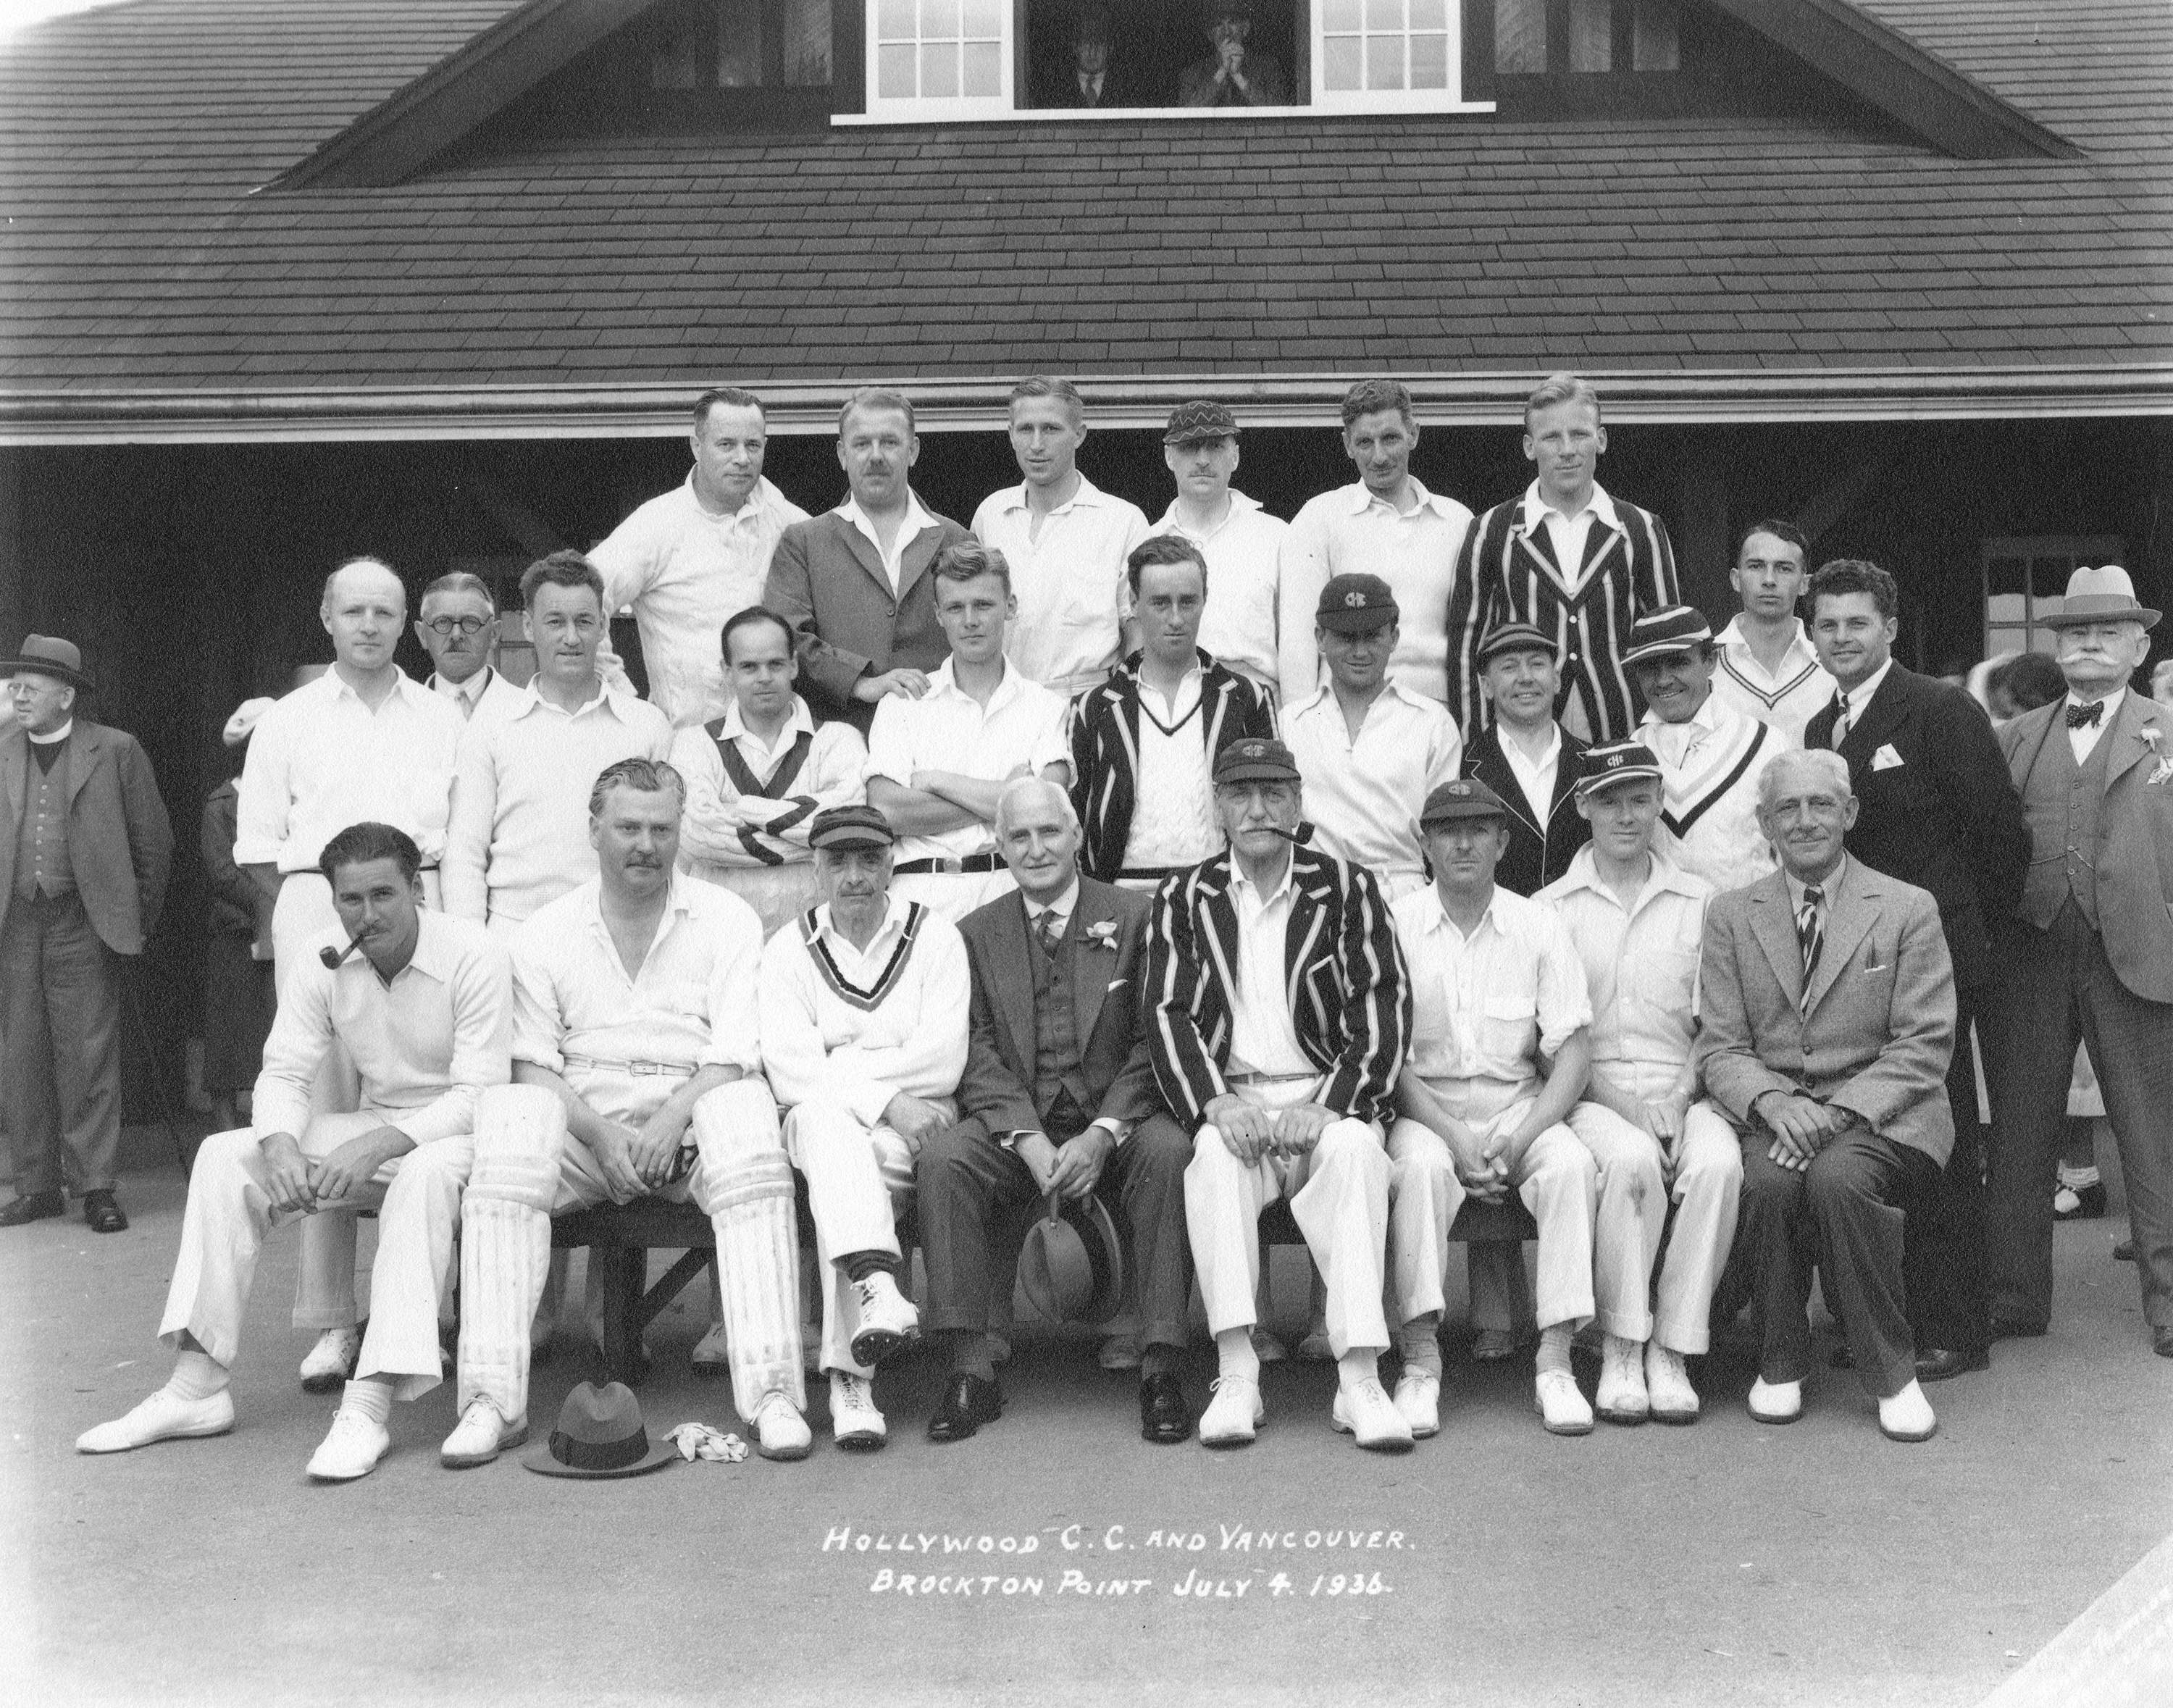 Hollywood C.C. and Vancouver [at] Brockton Point. Group portrait showing Errol Flynn (seated in front row far left).